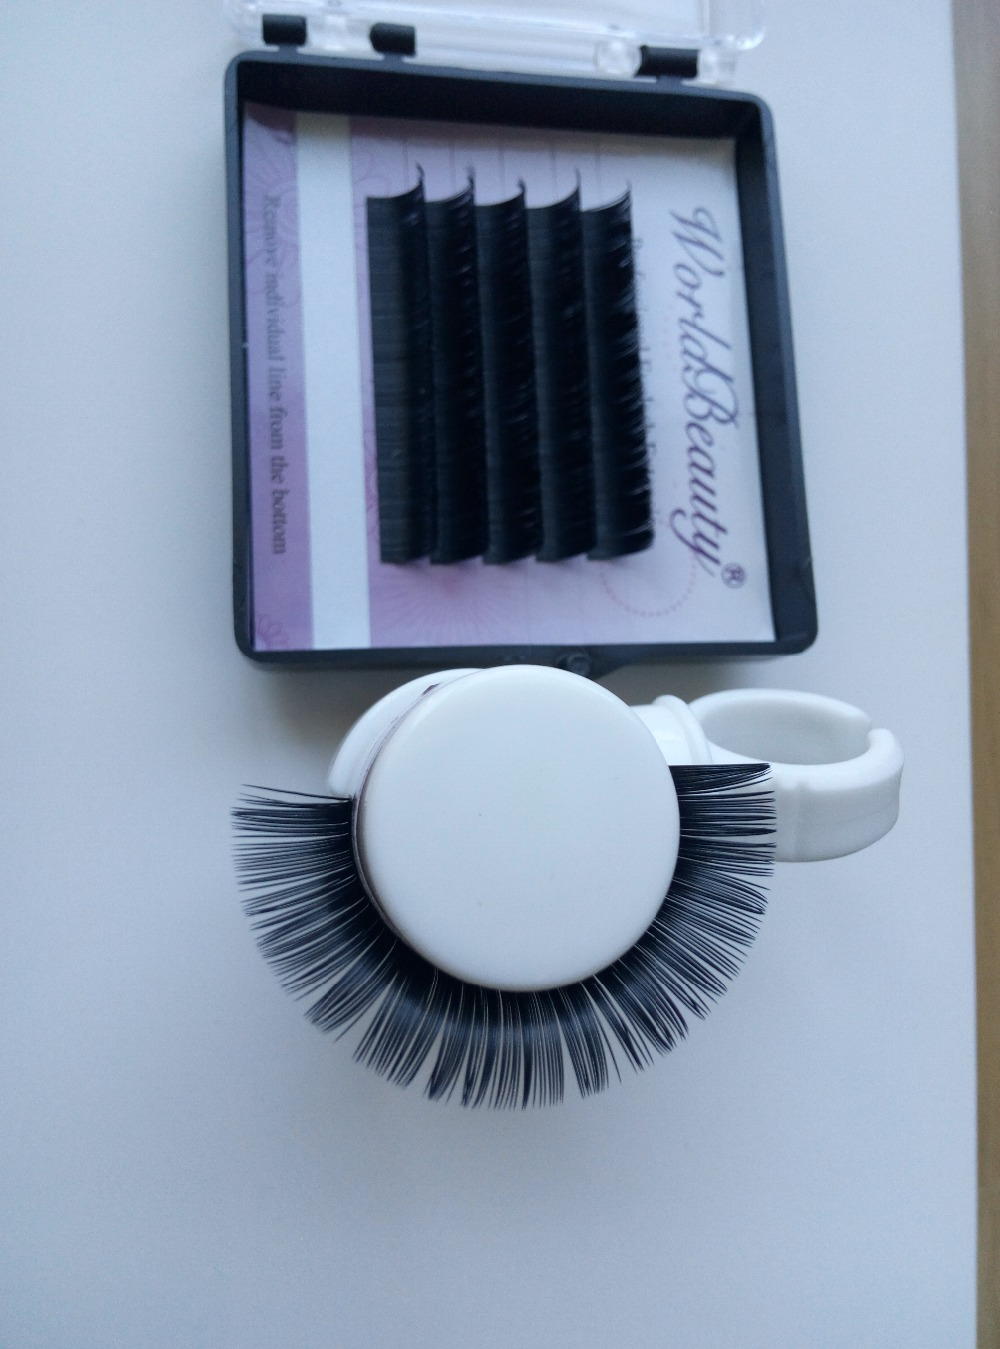 10 trays/lot ,5 lines/tray Black color T type Matt Flat Eyelash Extension thickness 0.10/0.15/0.20mm,Fashionable and fancy gift